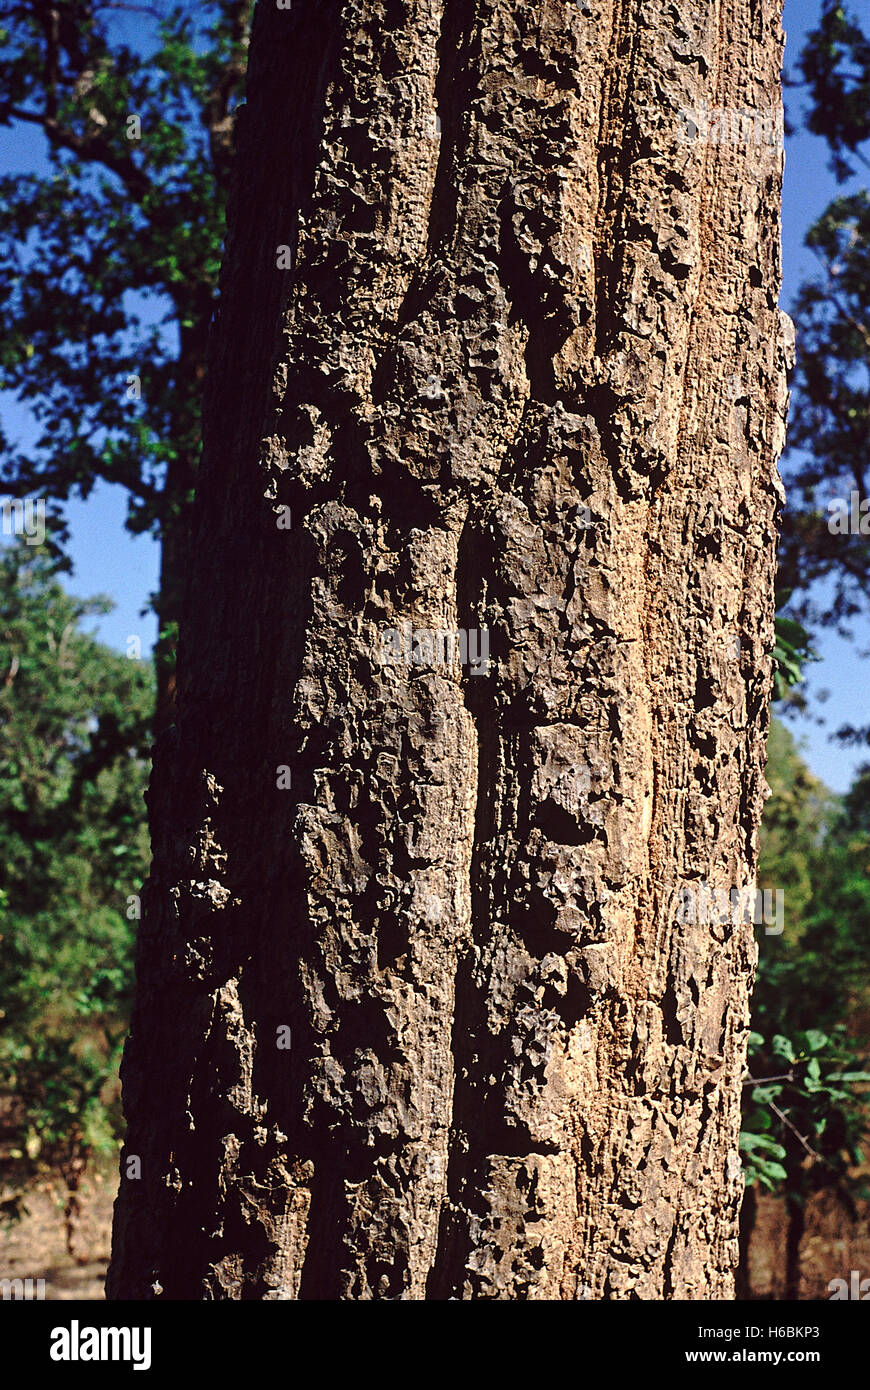 Bark. Shorea Robusta. Family: Dipterocarpaceae. Sal tree. A large tree which forms the main component of the Sal - Stock Image